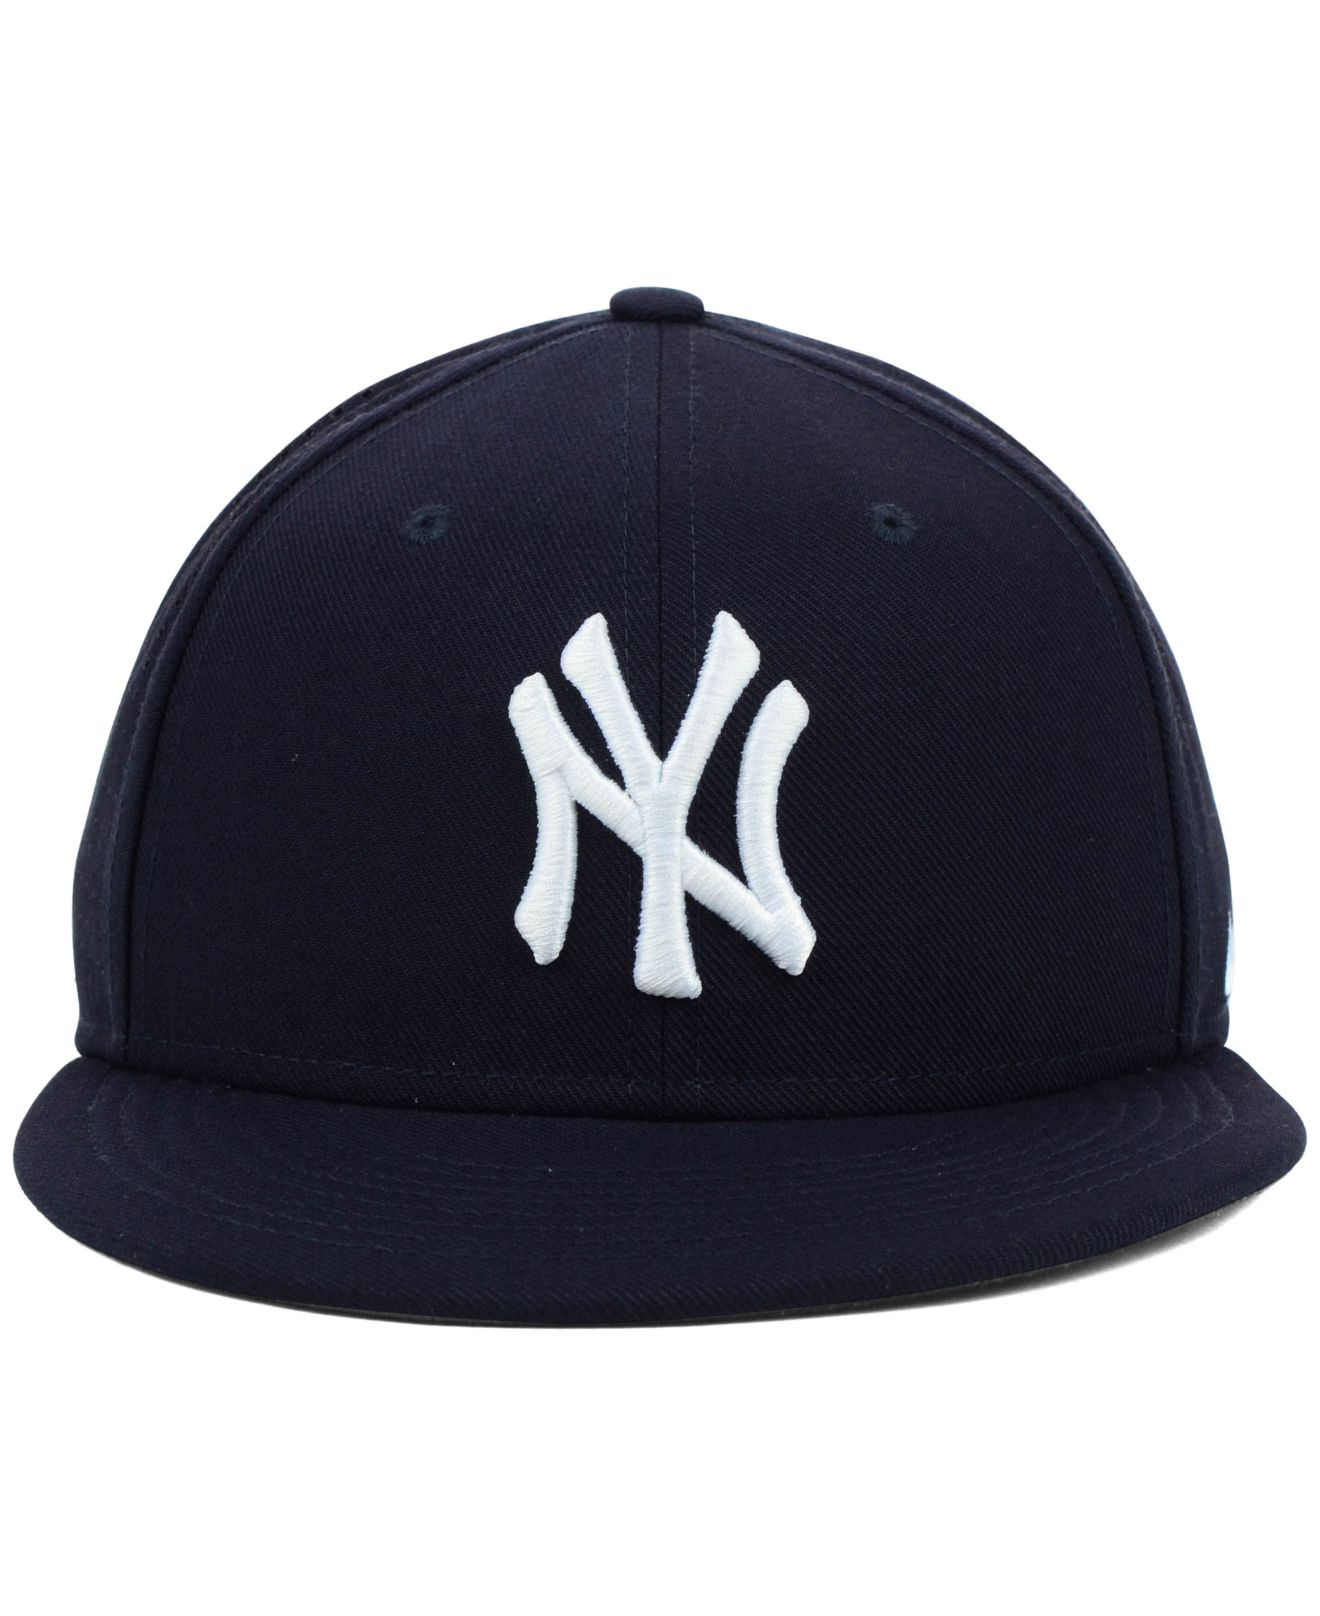 ... clearance lyst nike new york yankees dri fit vapor adjustable cap in  blue c7b42 28843 77dc199b048c